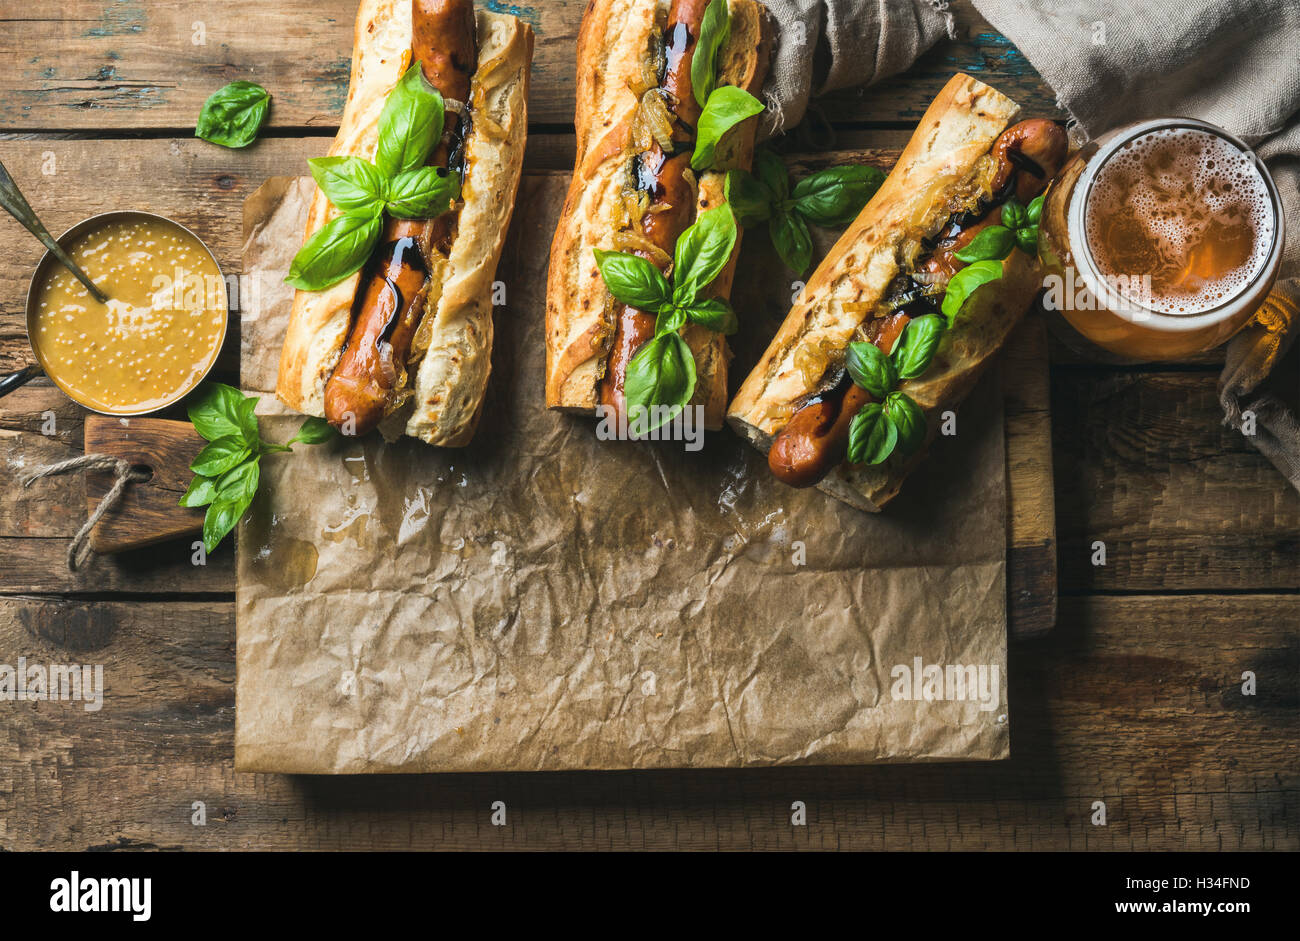 Glasses of wheat unfiltered beer and homemade grilled sausage dogs - Stock Image